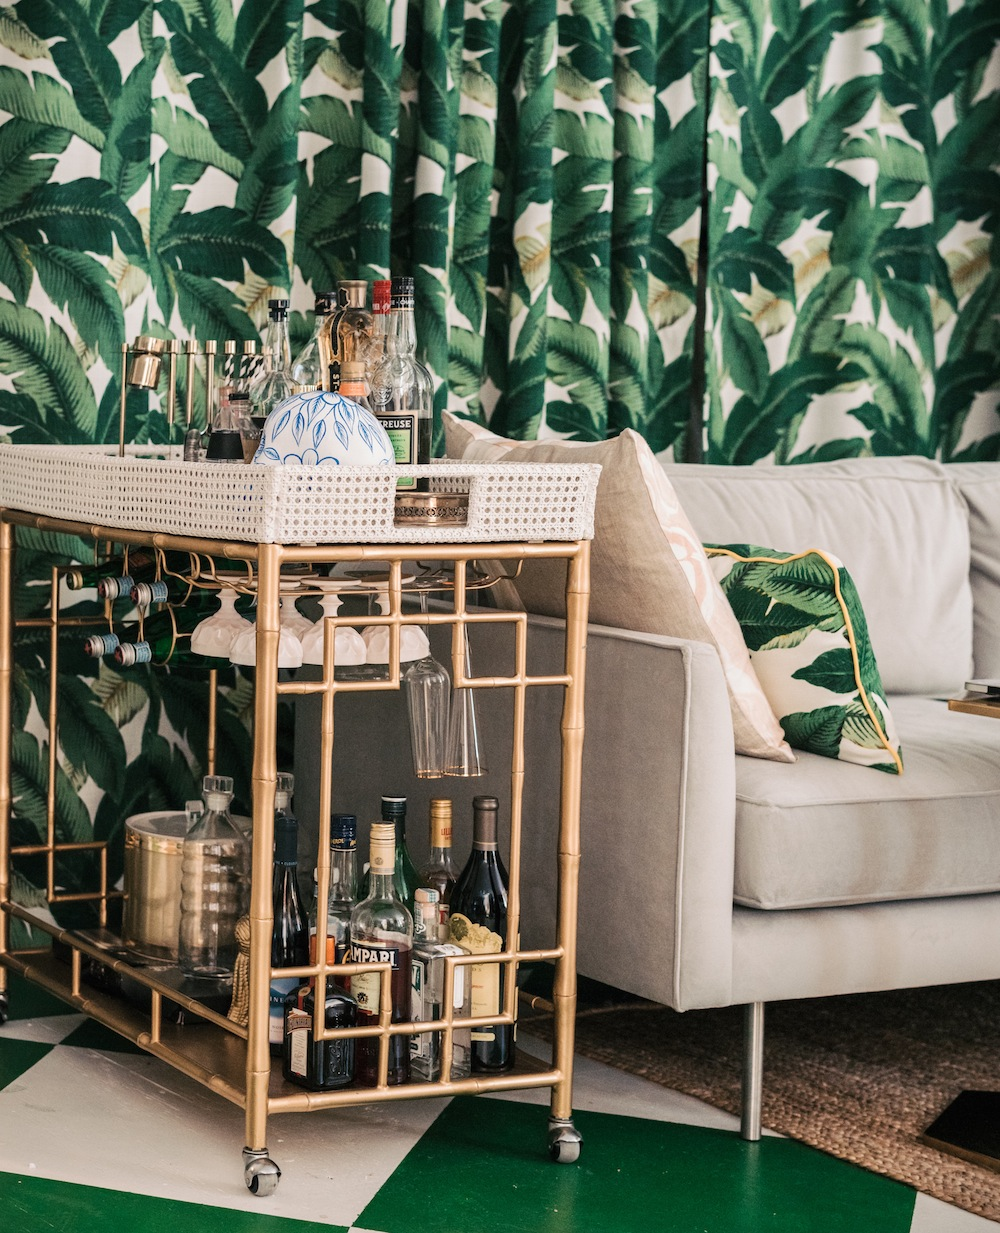 apartment update: my new couches! | Room & Board Anderson Custom Sofa Review - The Stripe Blog